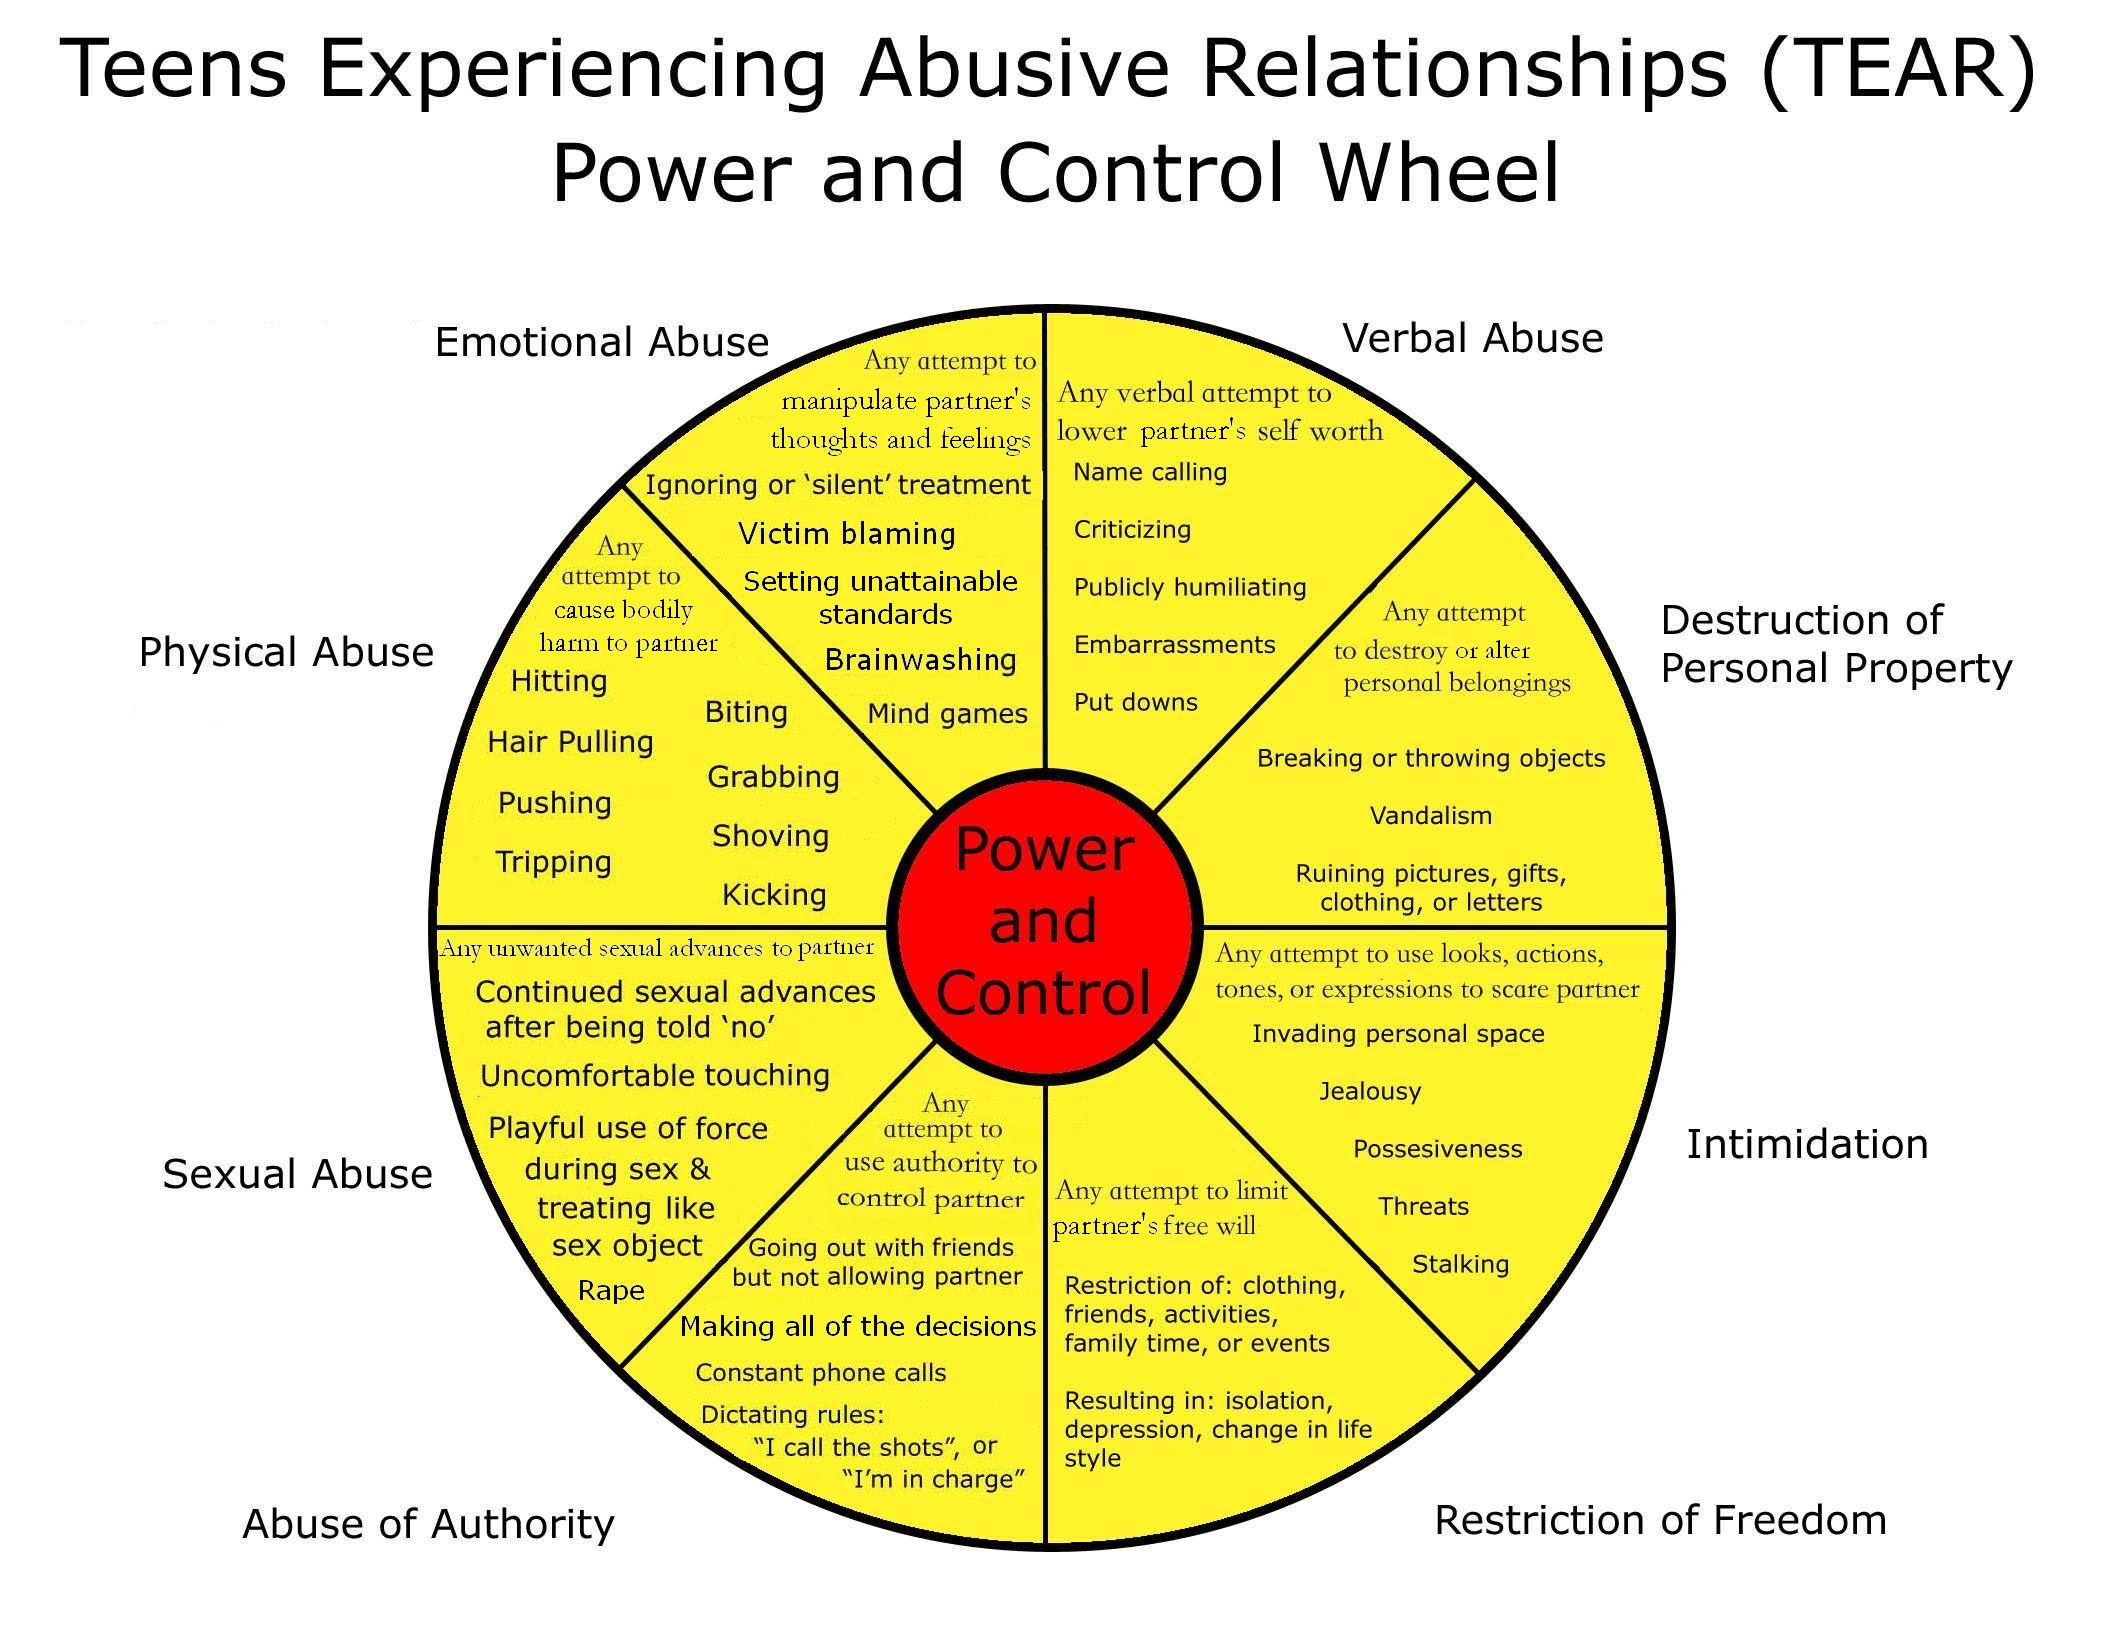 Tear Teens Experiencing Abusive Relationships